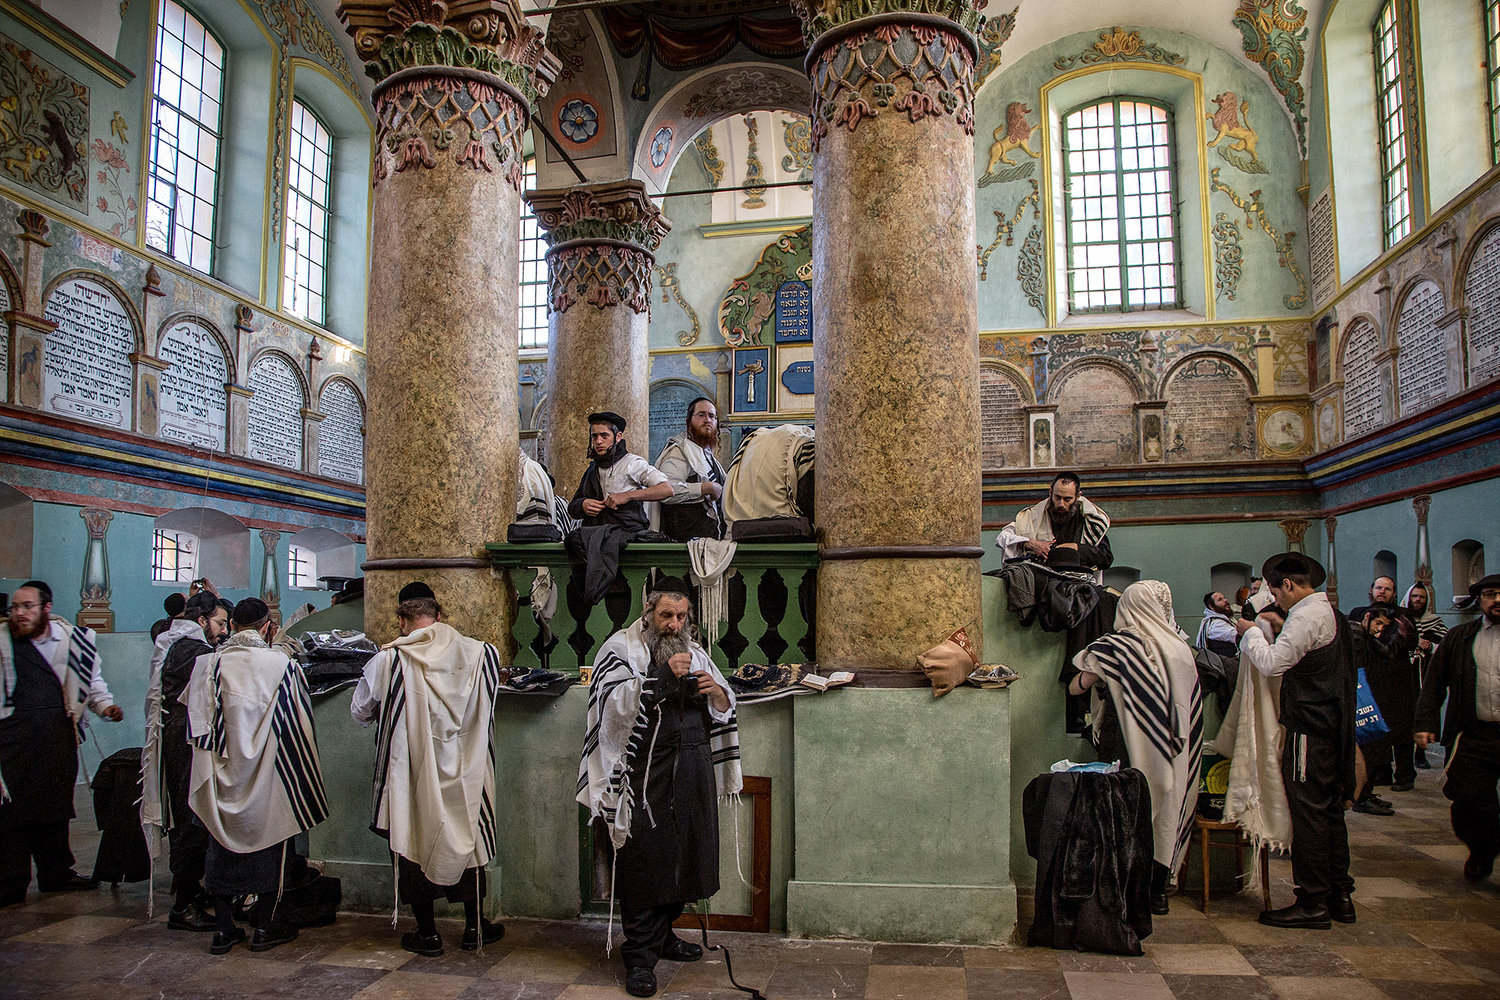 Hasidim gather for morning prayers at an old synagogue in Lancut.